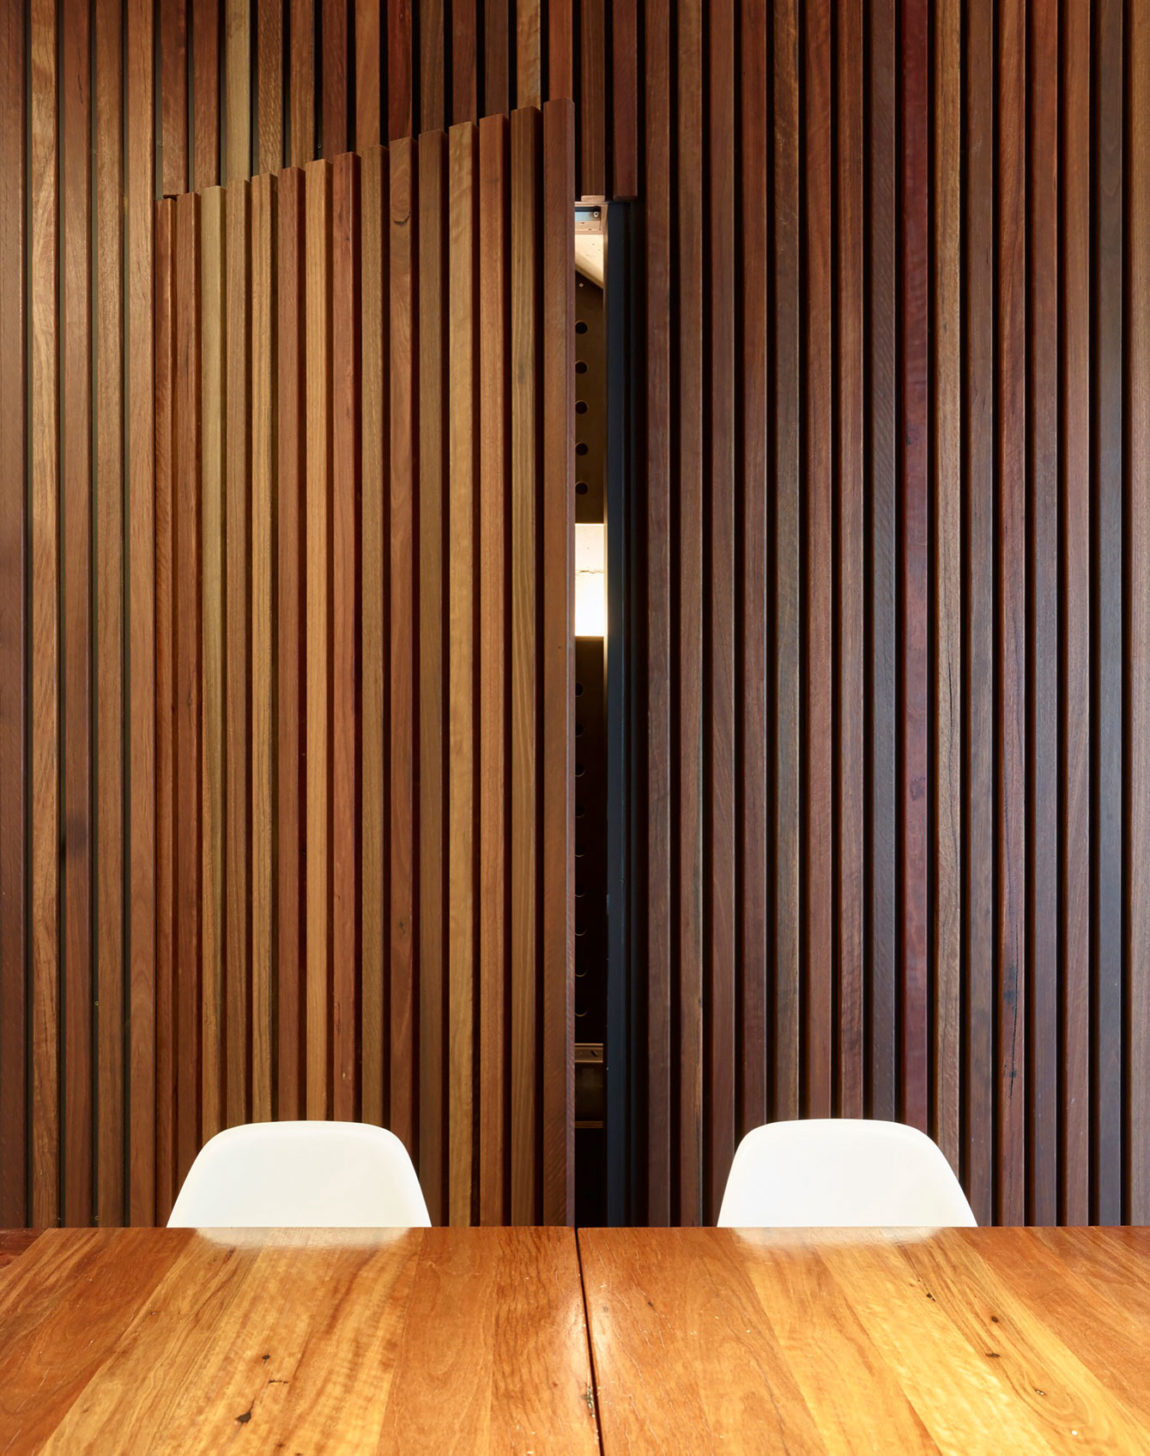 Fifth Avenue by O'Neill Architecture (10)